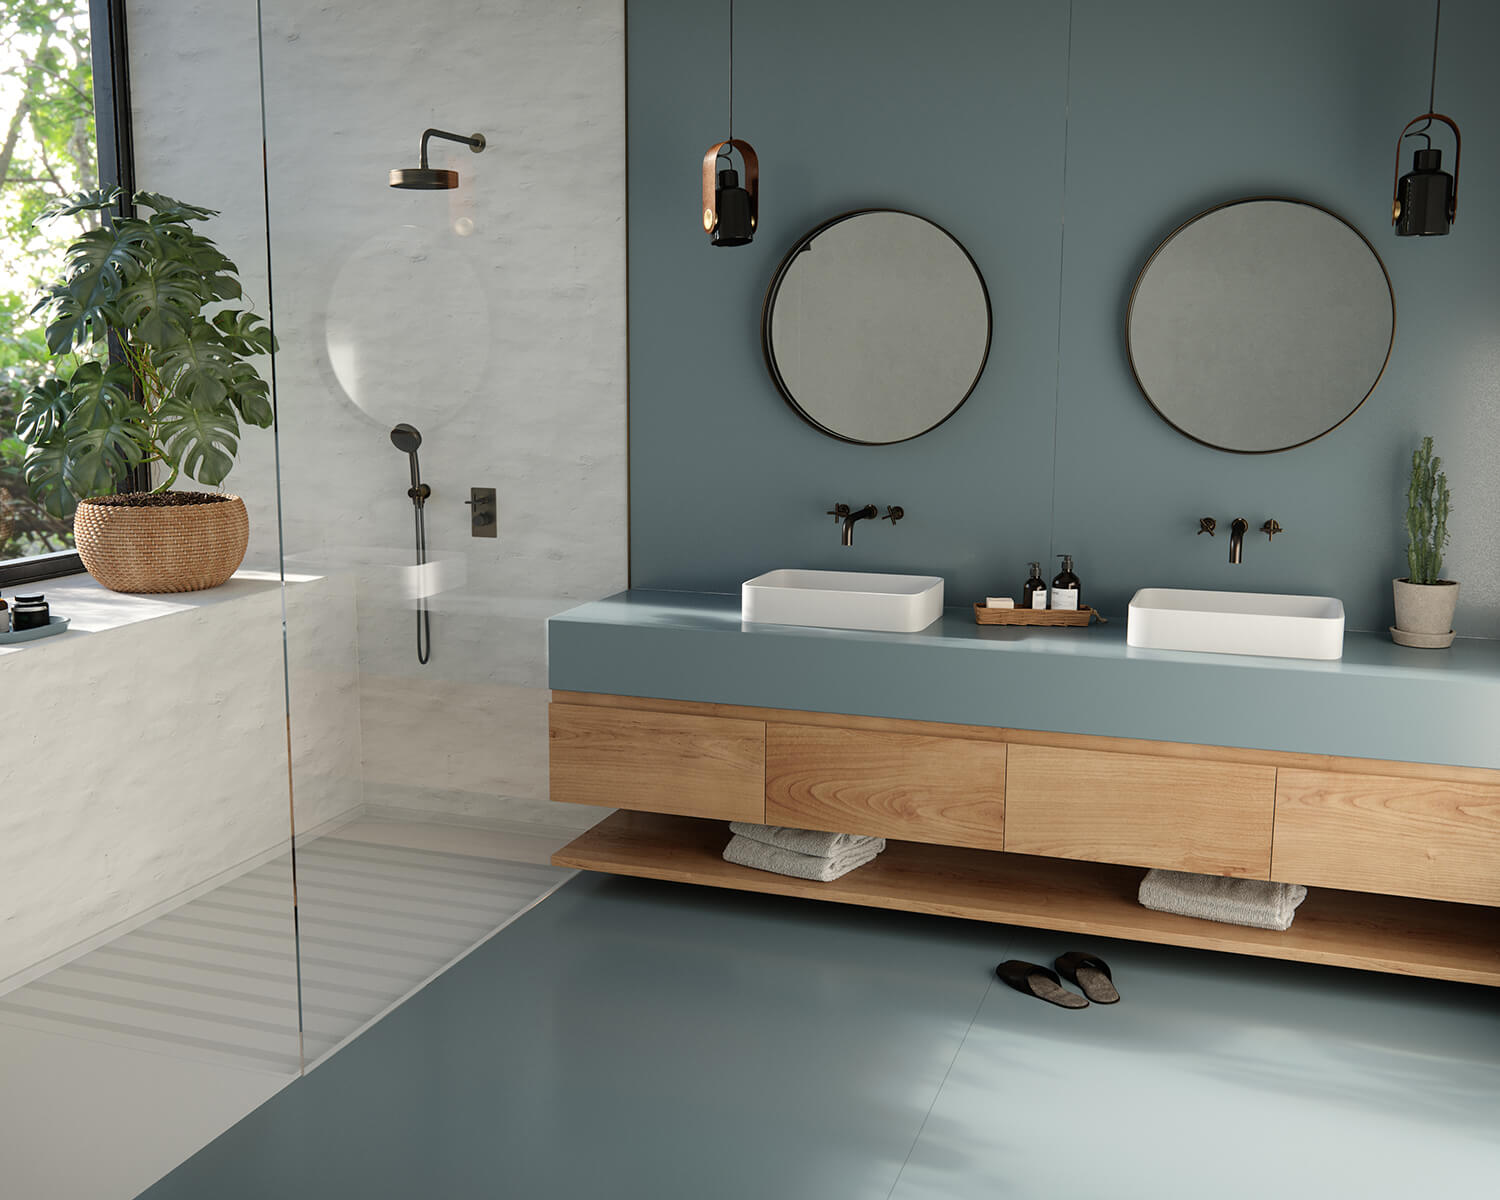 Bathroom with blue walls, floor, and countertop with white tiled shower and two circular mirrors above the vanity